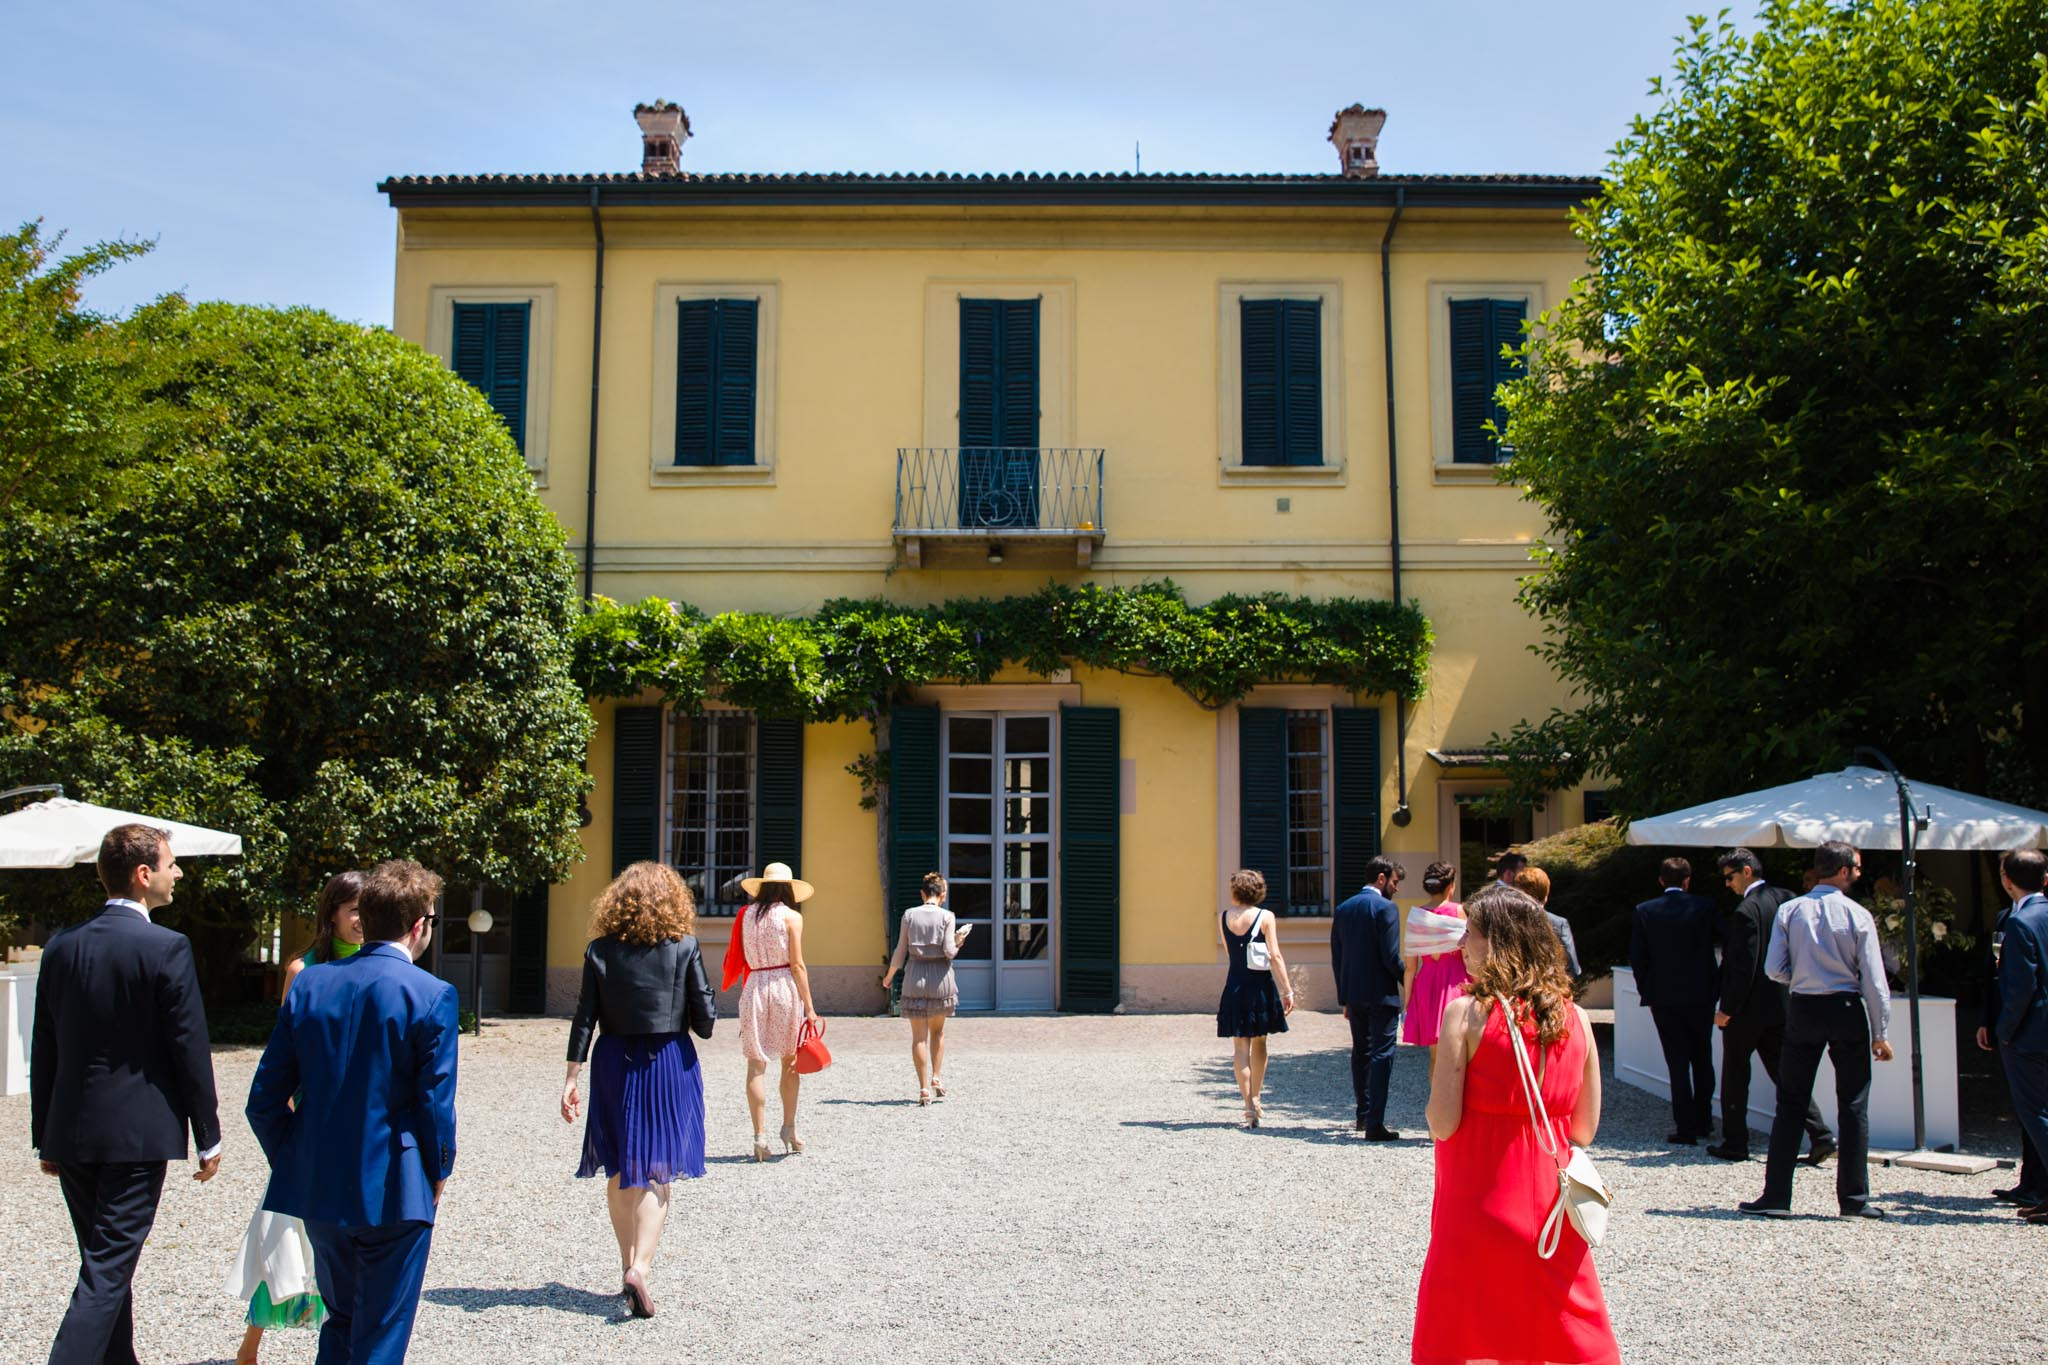 Italian wedding at the Villa Negri